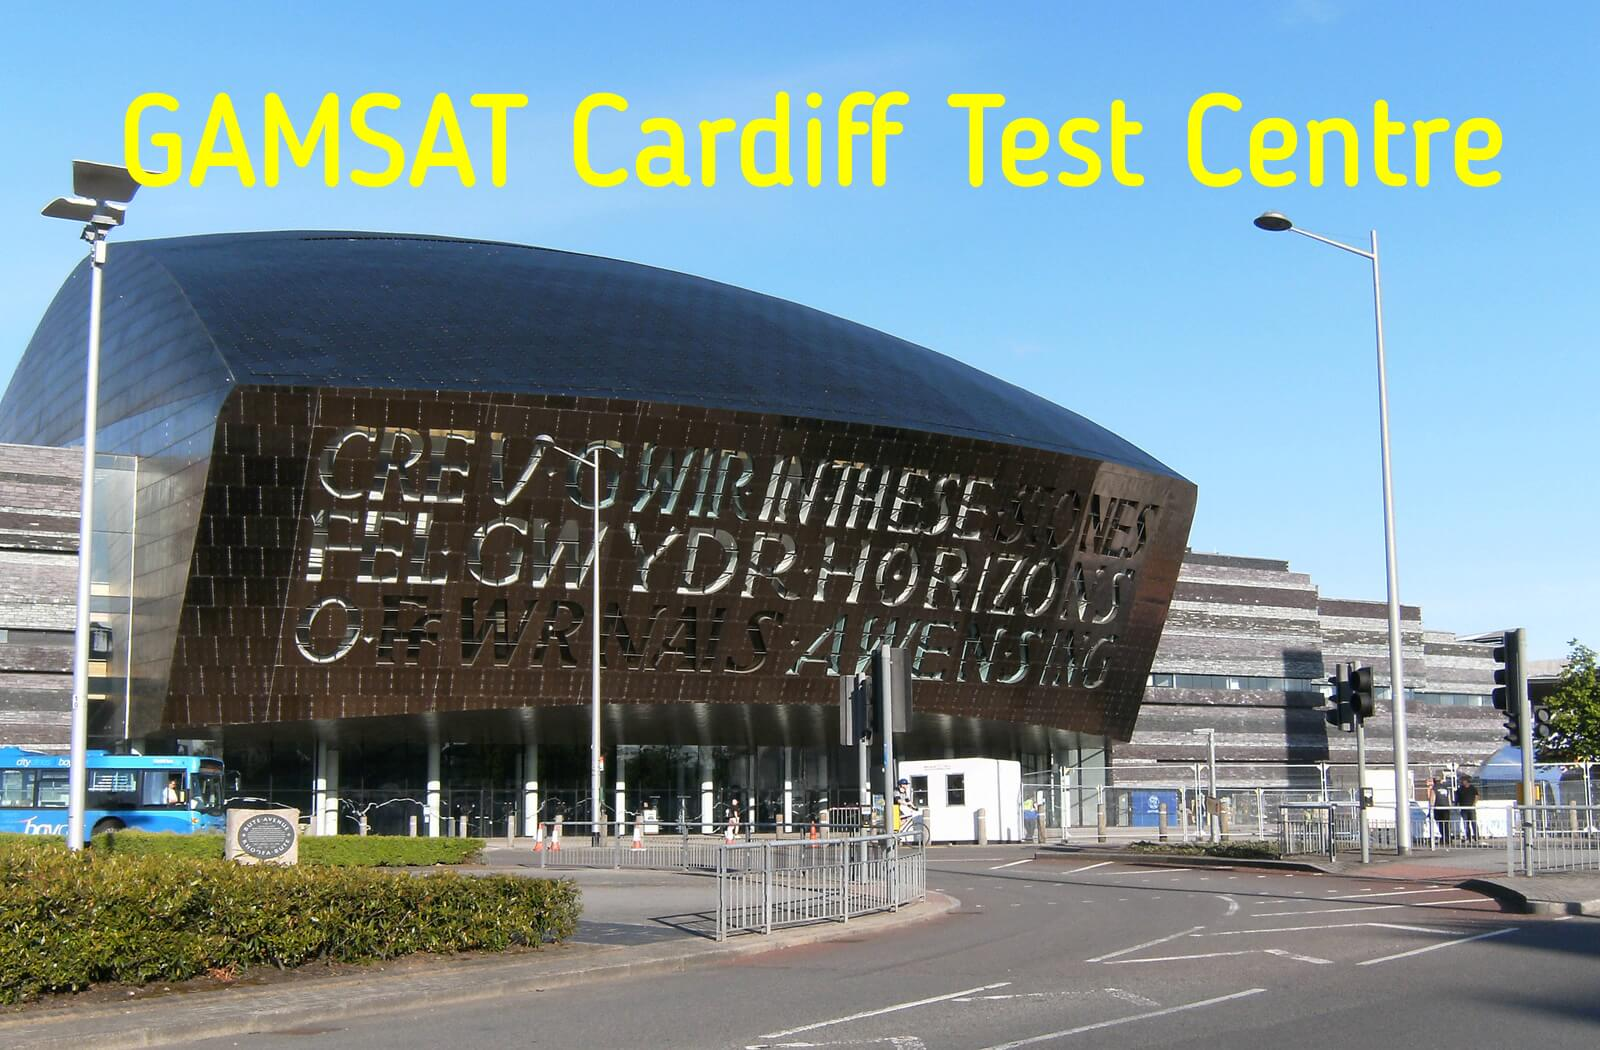 Where is GAMSAT held in Cardiff?